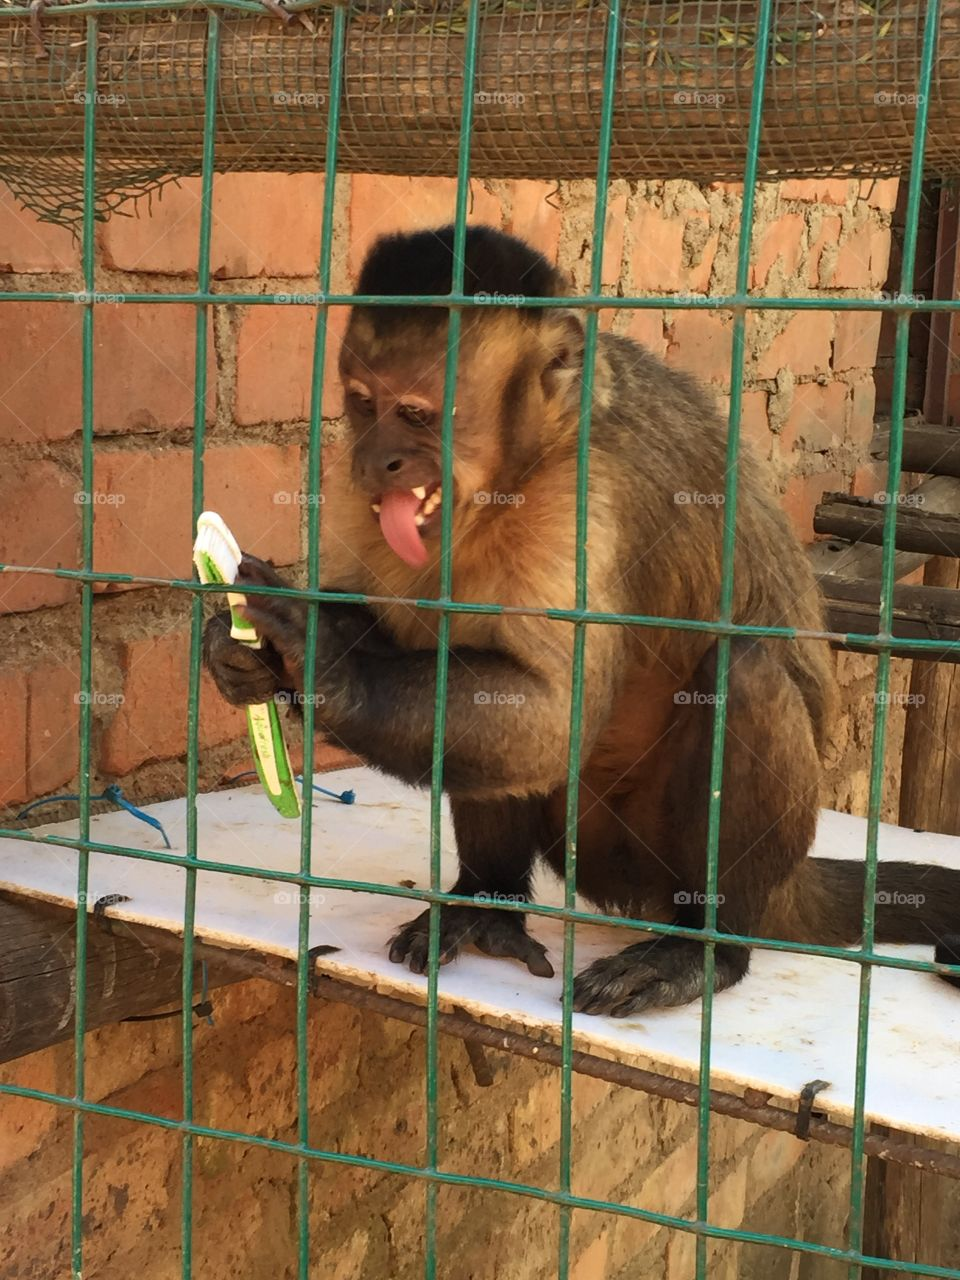 Capuchin with toothbrush